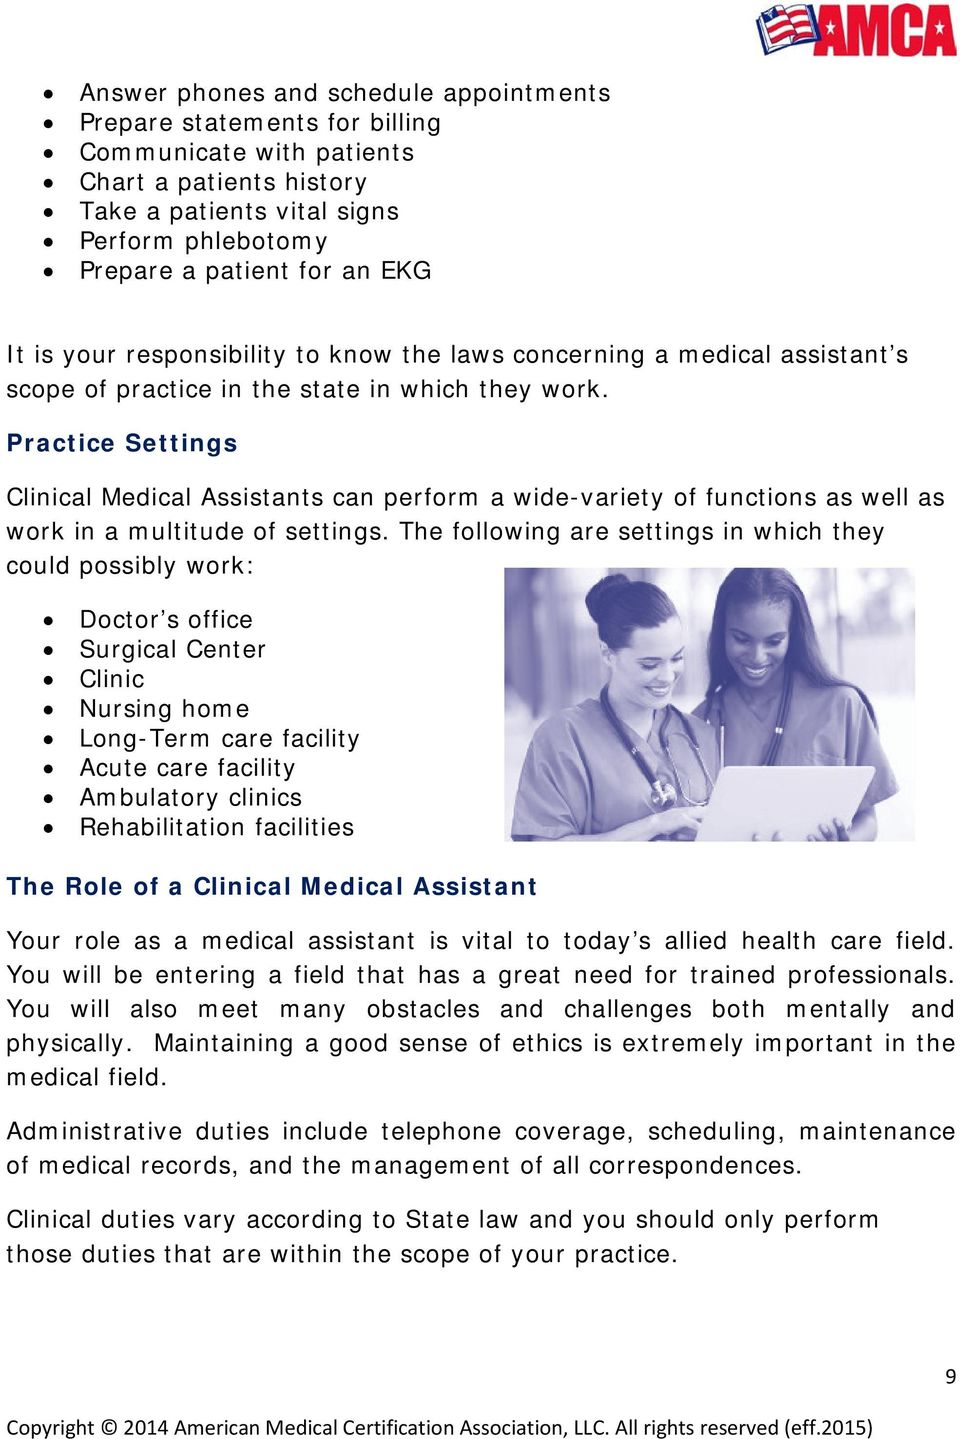 Amca Candidate Handbook Clinical Medical Assistant Certification Pdf